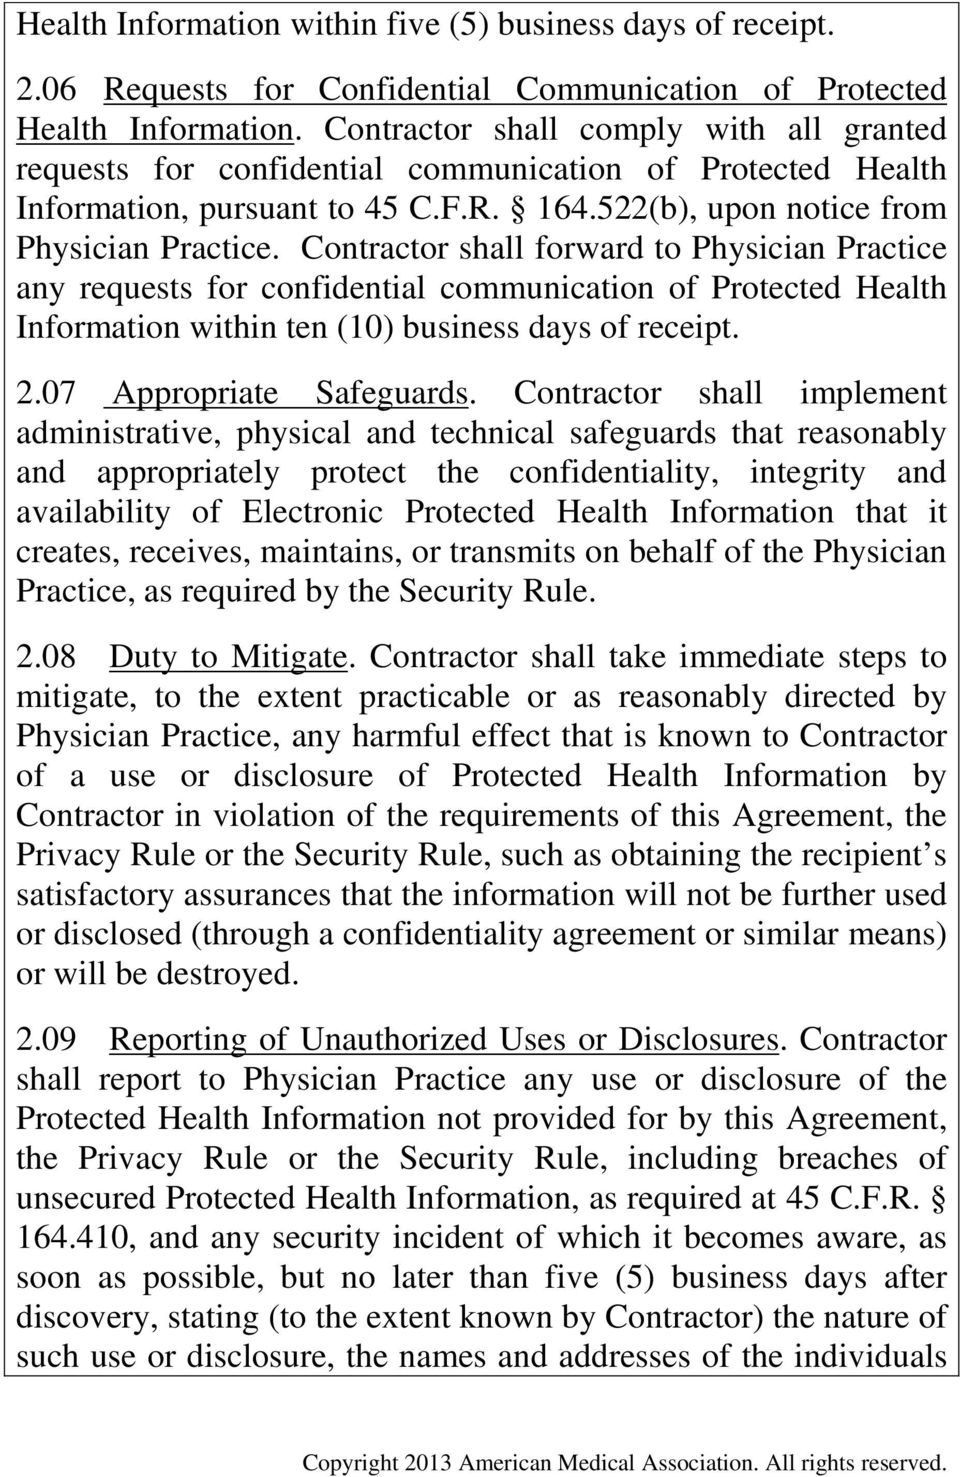 Contractor shall forward to Physician Practice any requests for confidential communication of Protected Health Information within ten (10) business days of receipt. 2.07 Appropriate Safeguards.